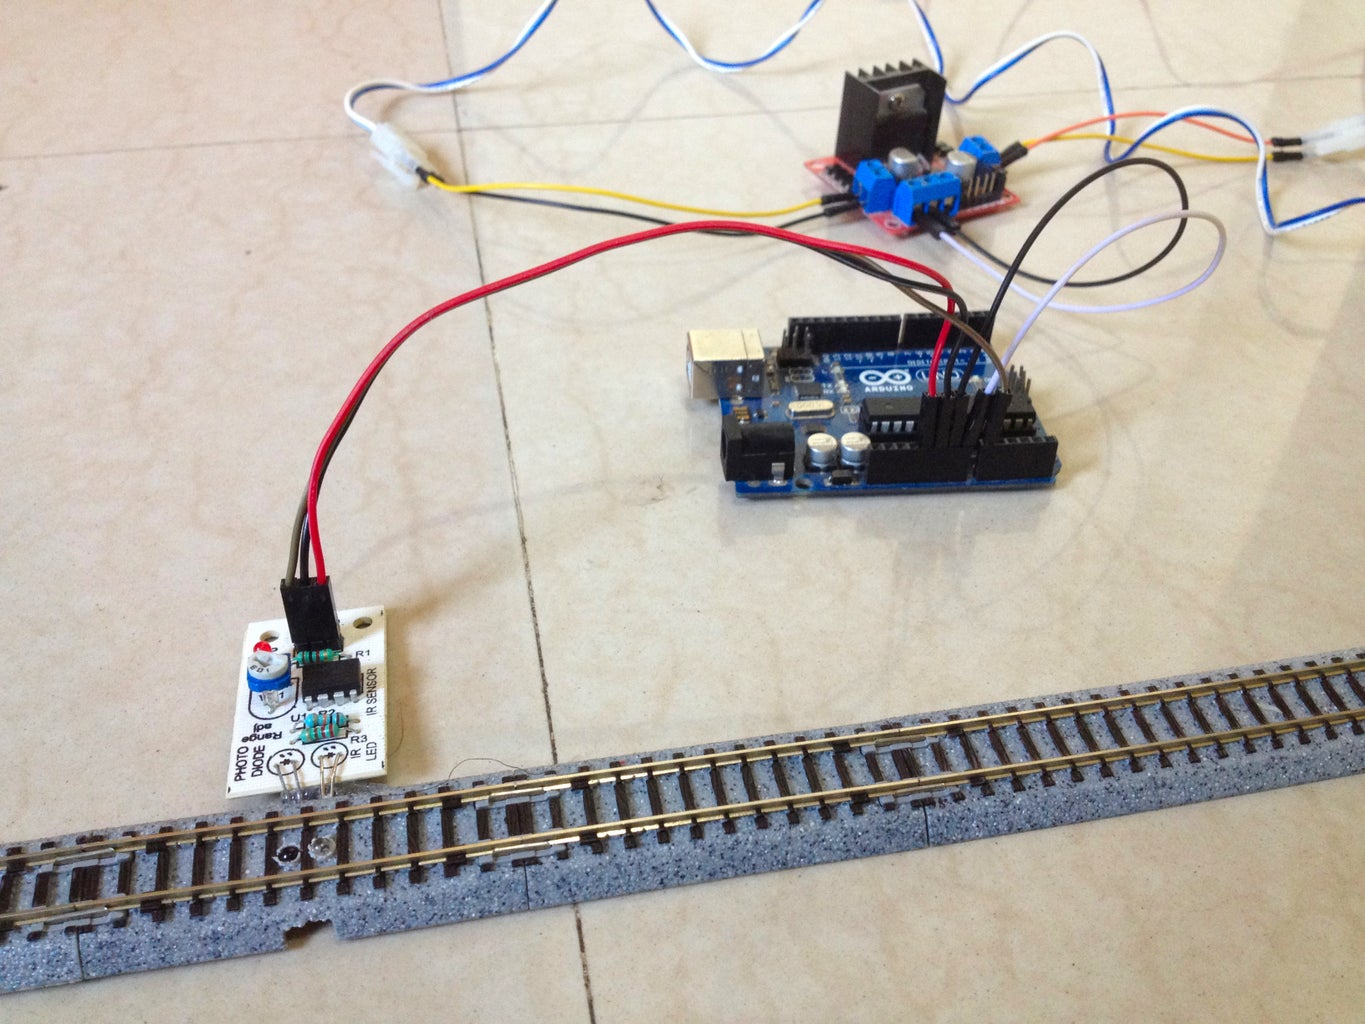 Connect the Sensor to the Arduino Board